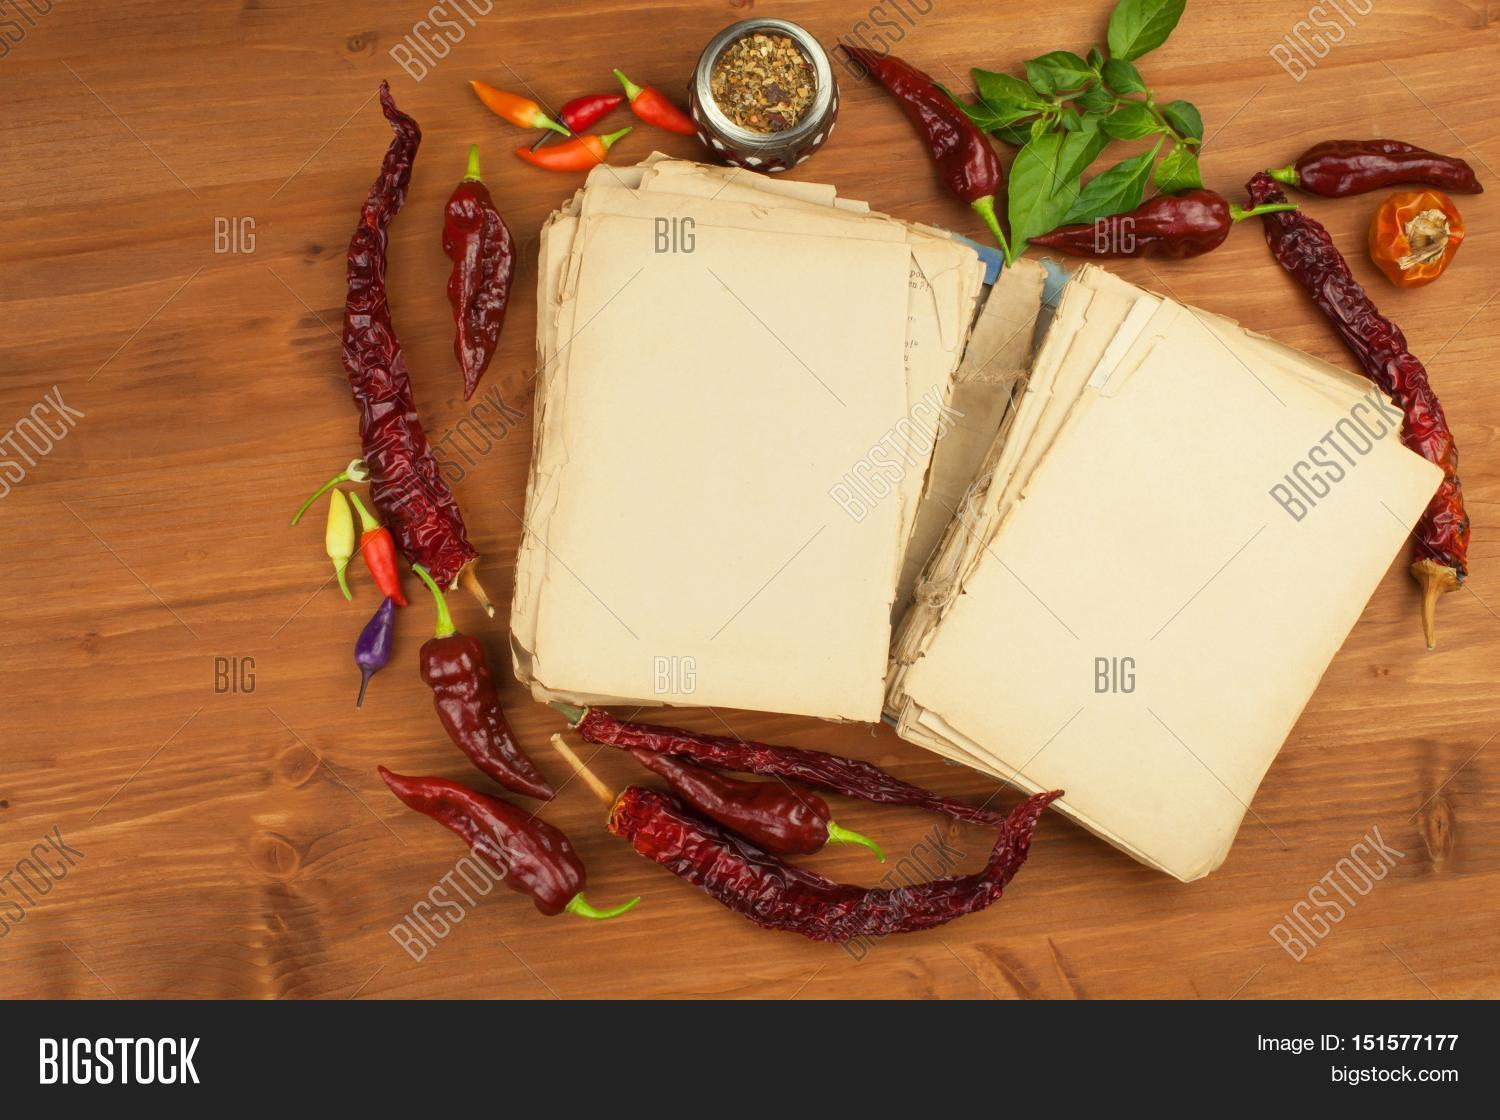 Cookbook chillies image photo free trial bigstock cookbook and chillies recipe for spicy food mexican cuisine food preparation according to forumfinder Choice Image